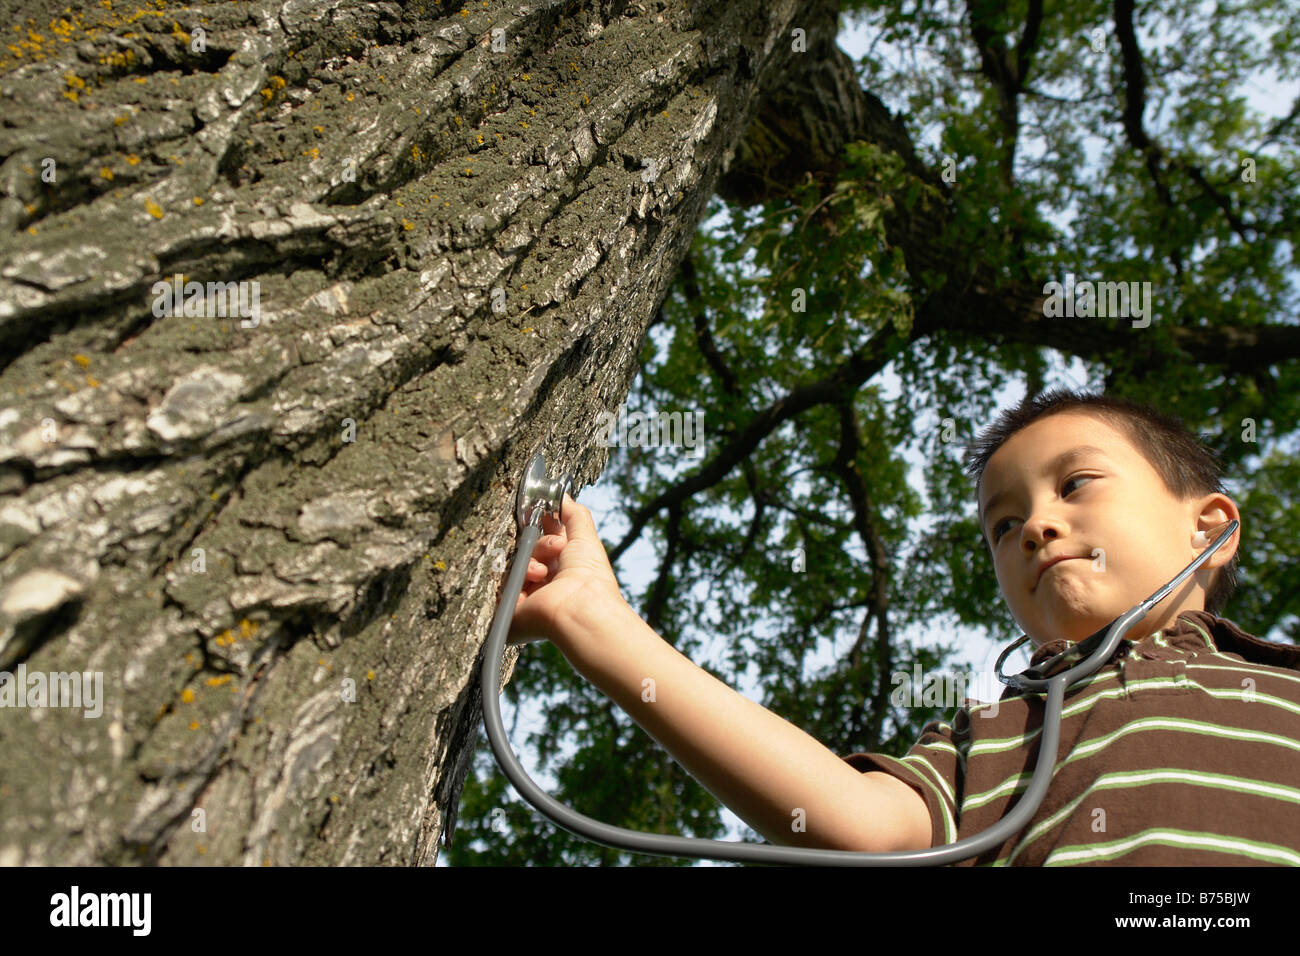 Seven year old boy with stethescope placed on tree, Winnipeg, Canada Stock Photo